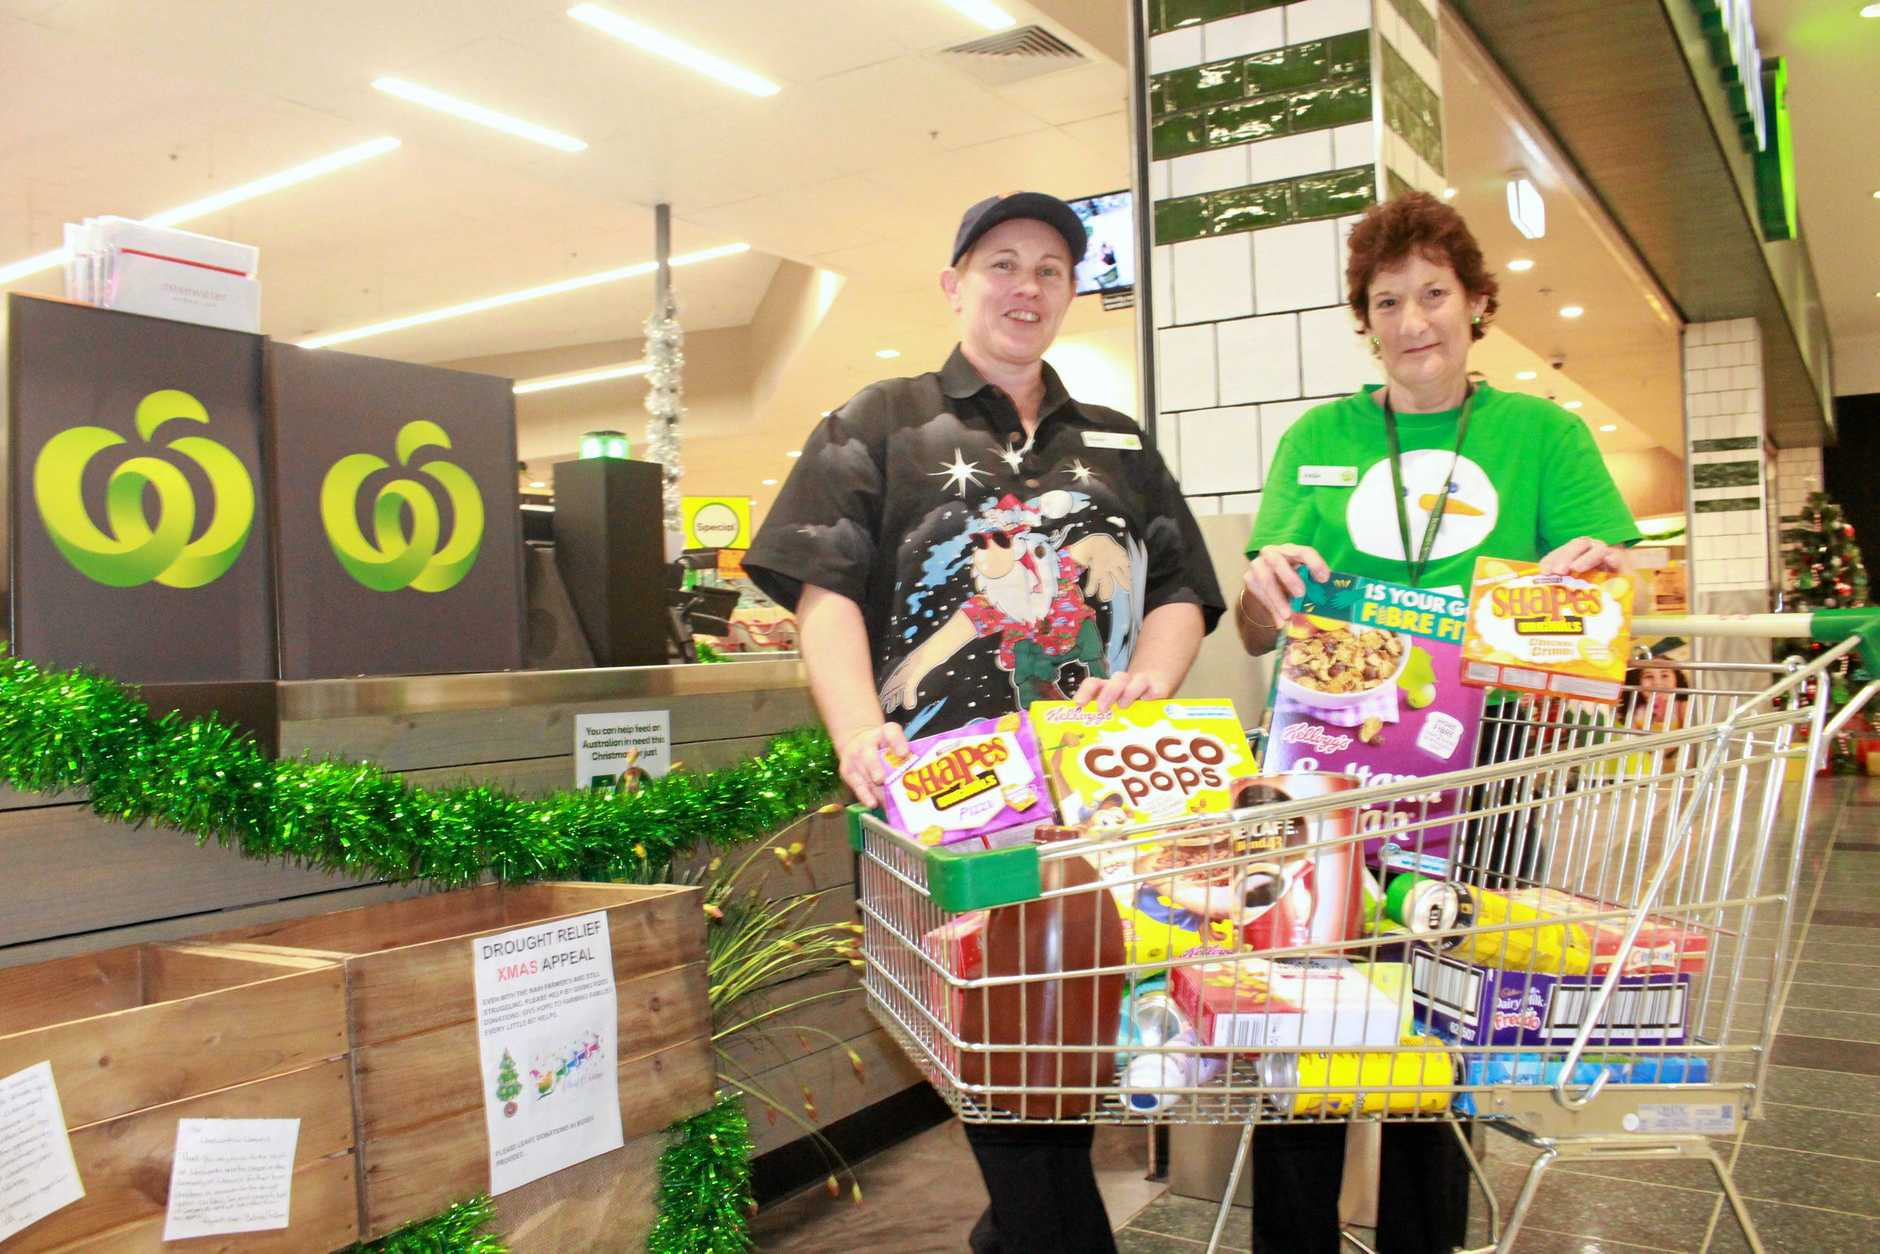 COME ALONG: Woolworths staff members Suzan O'Dea and Verlie Rhodes are asking Warwick residents to lend a helping hand this Christmas.